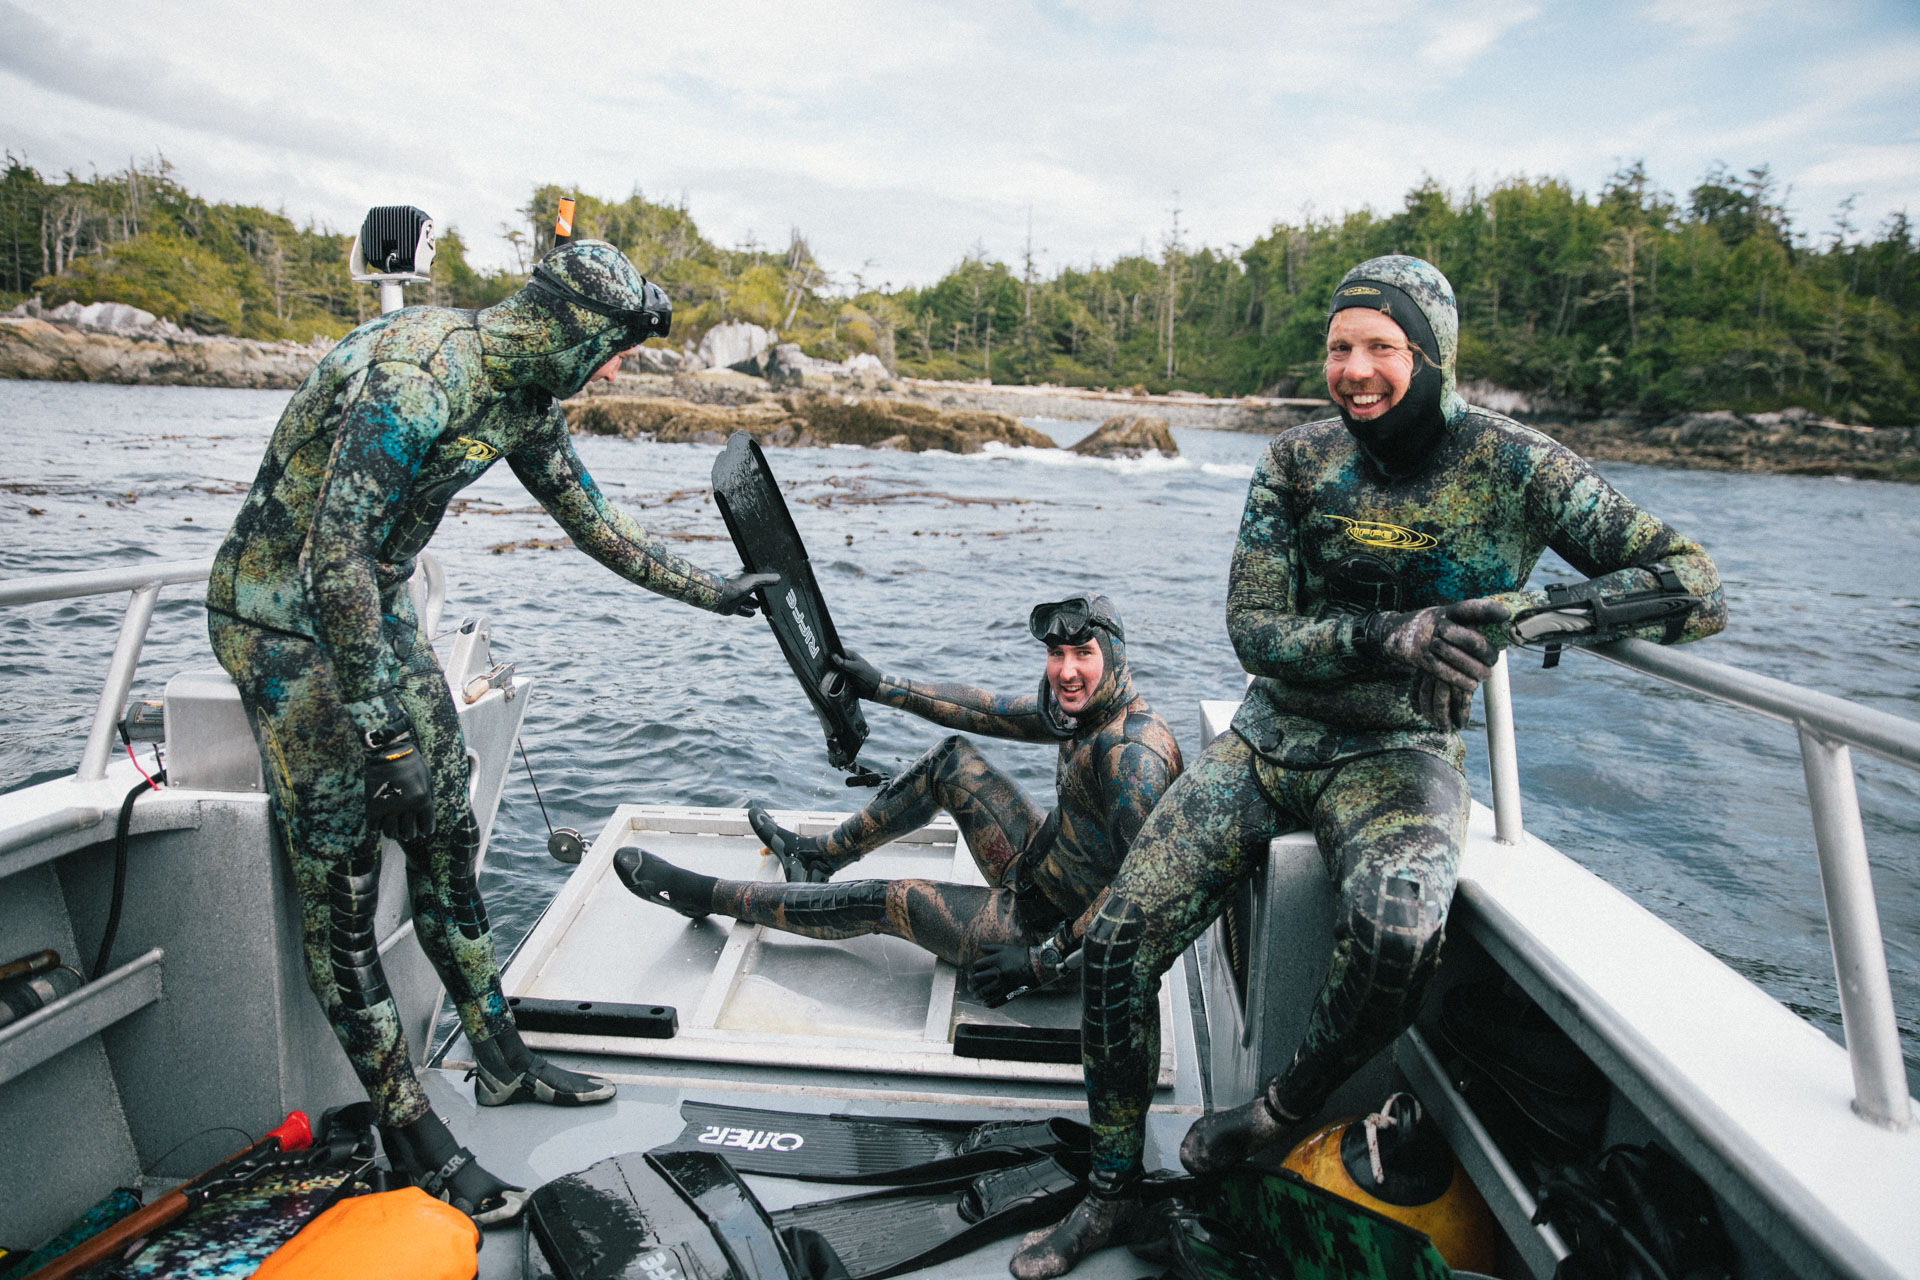 Chris Adair, Owner of Bottom Dwellers, on the right enjoying some laughs and good times exploring the rugged coast of BC with Nimmo Bay Resort and crew.